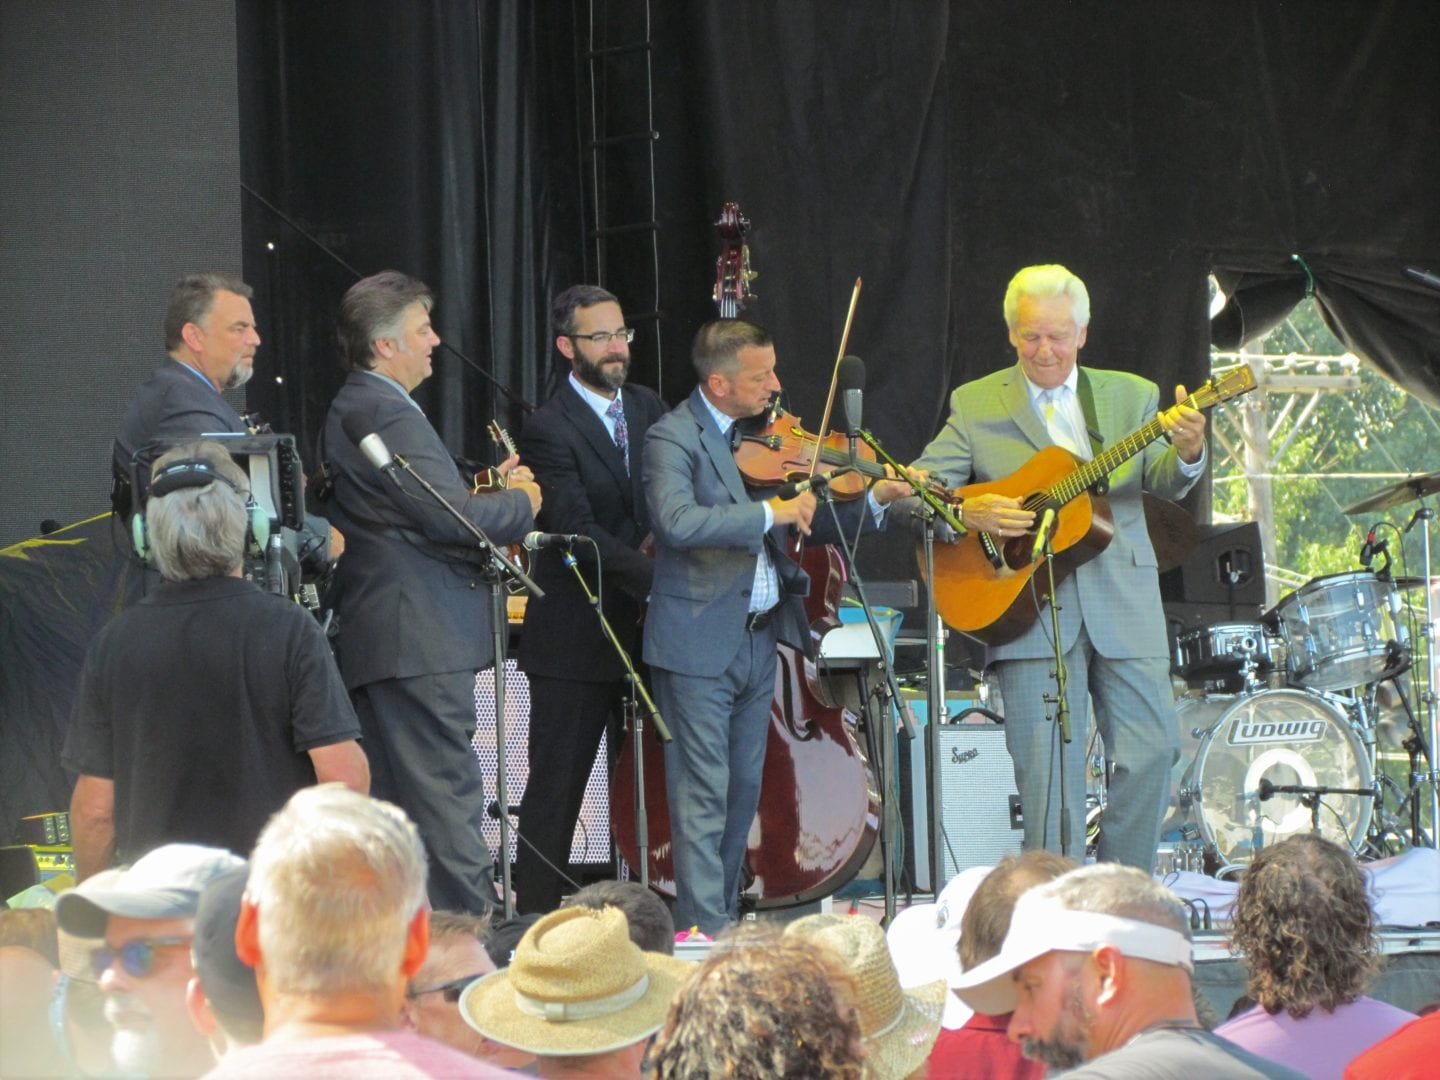 Del McCoury and the band playing stringed instruments